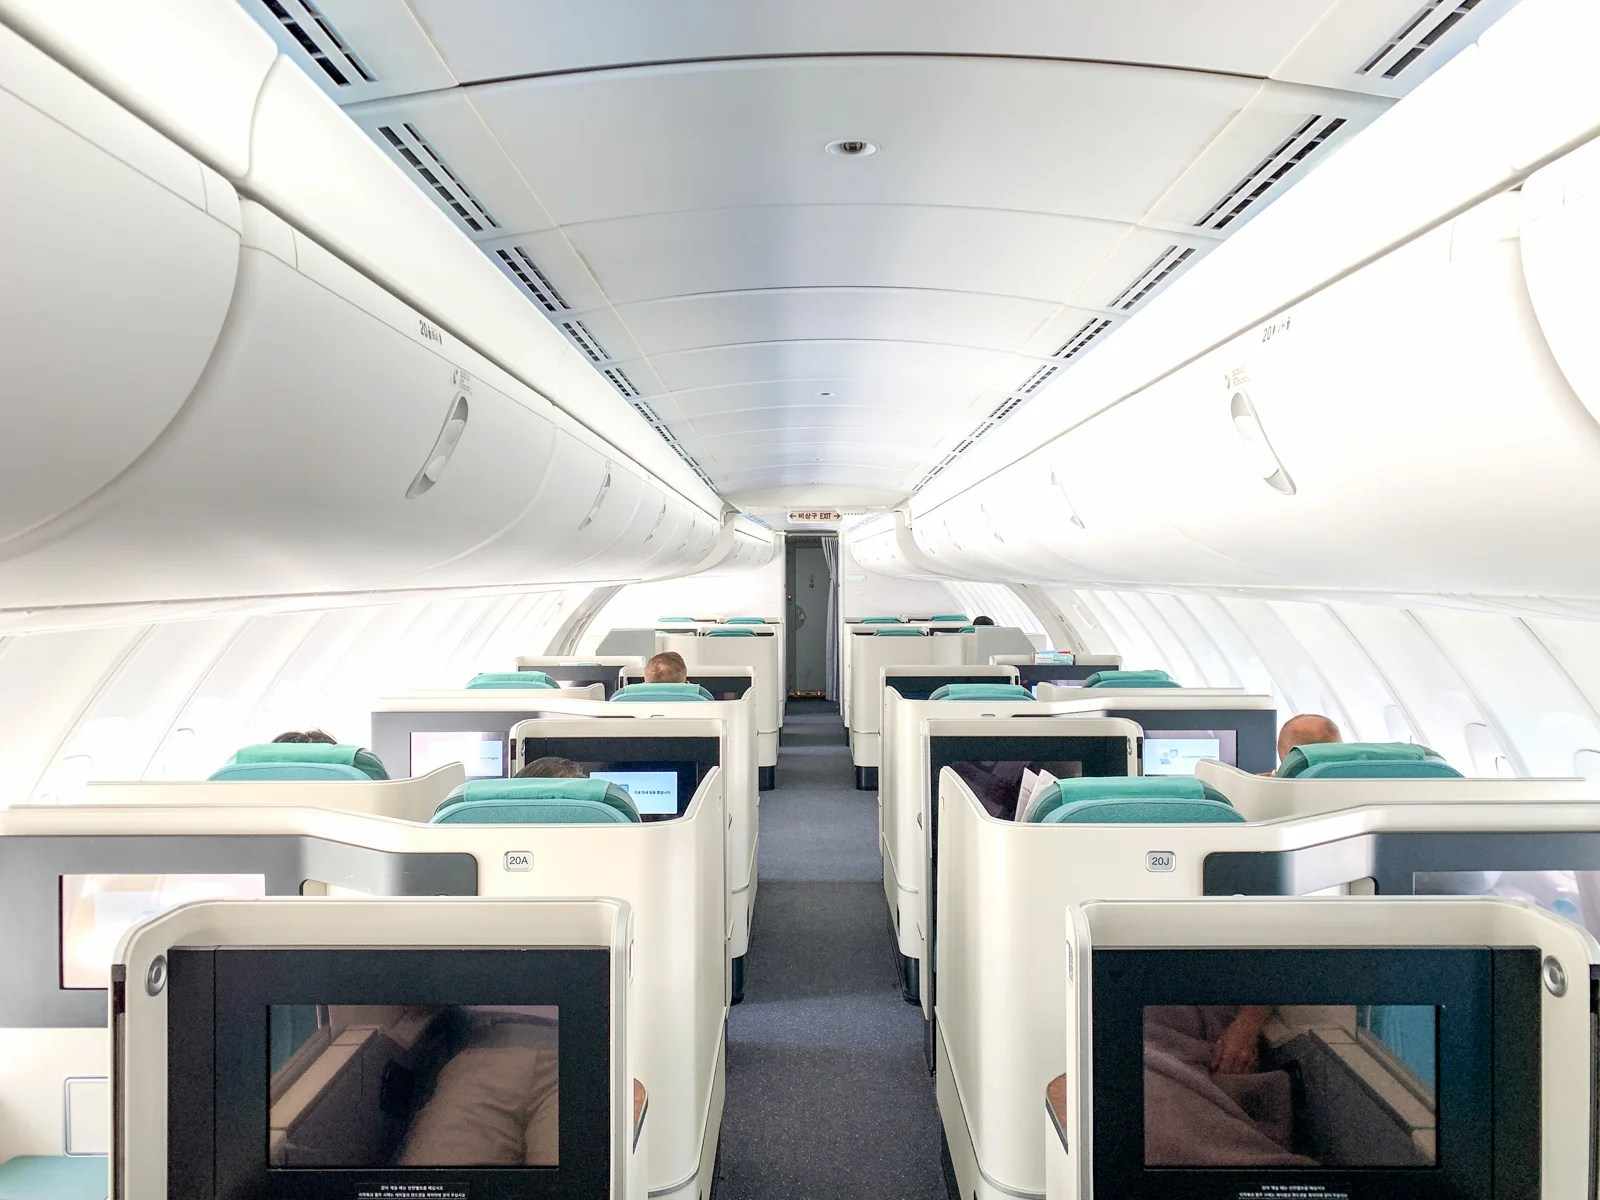 Flight of flavor: A review of Korean Air's business class on the 747-8 from Atlanta to Seoul